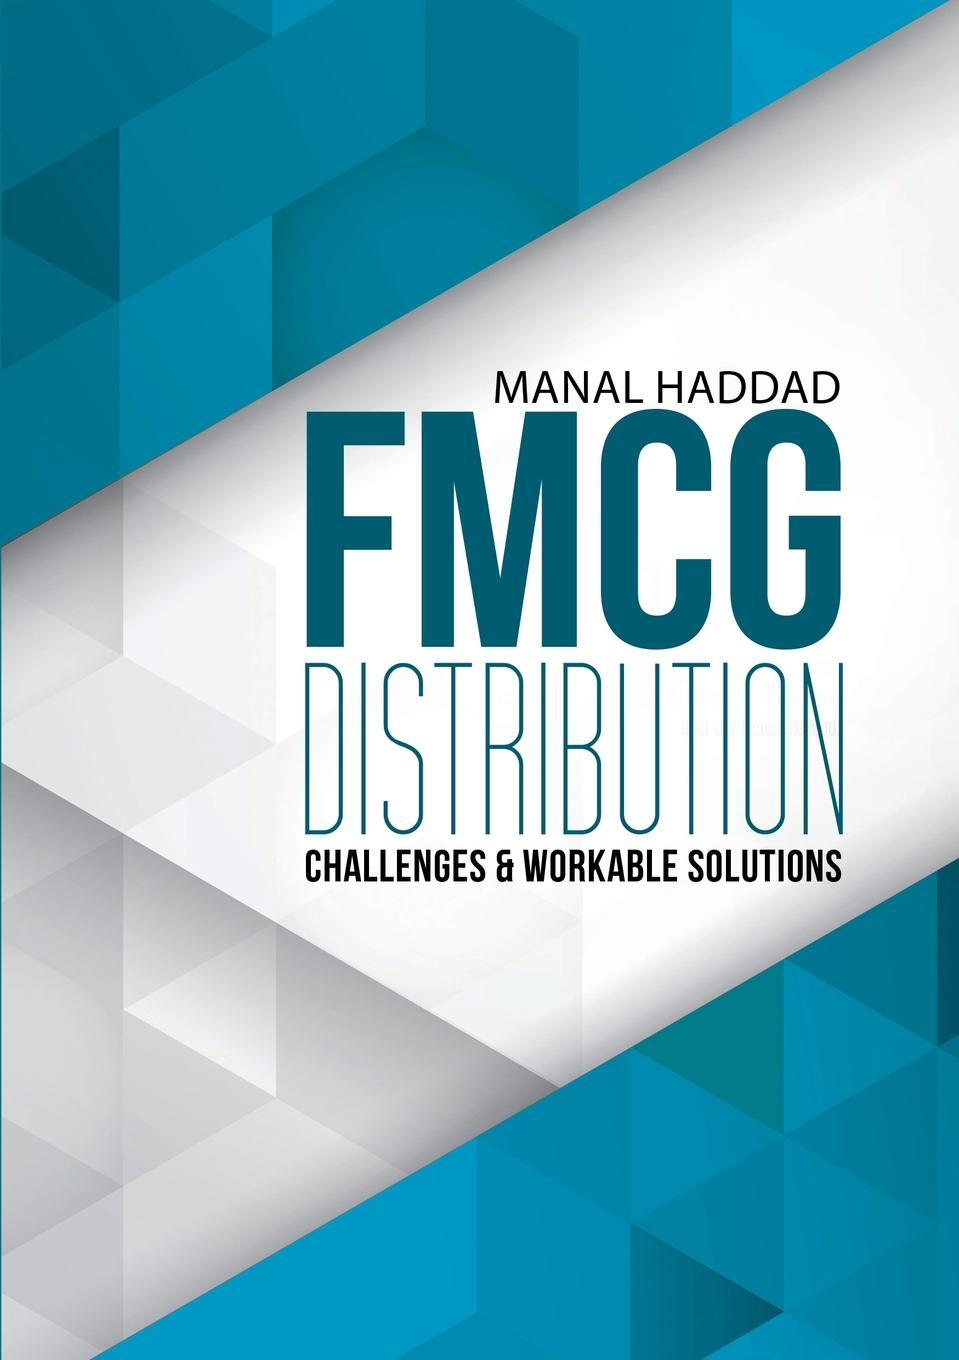 Manal Haddad FMCG Distribution Challenges & Workable Solutions georg baltes new perspectives on supply and distribution chain financing case studies from china and europe